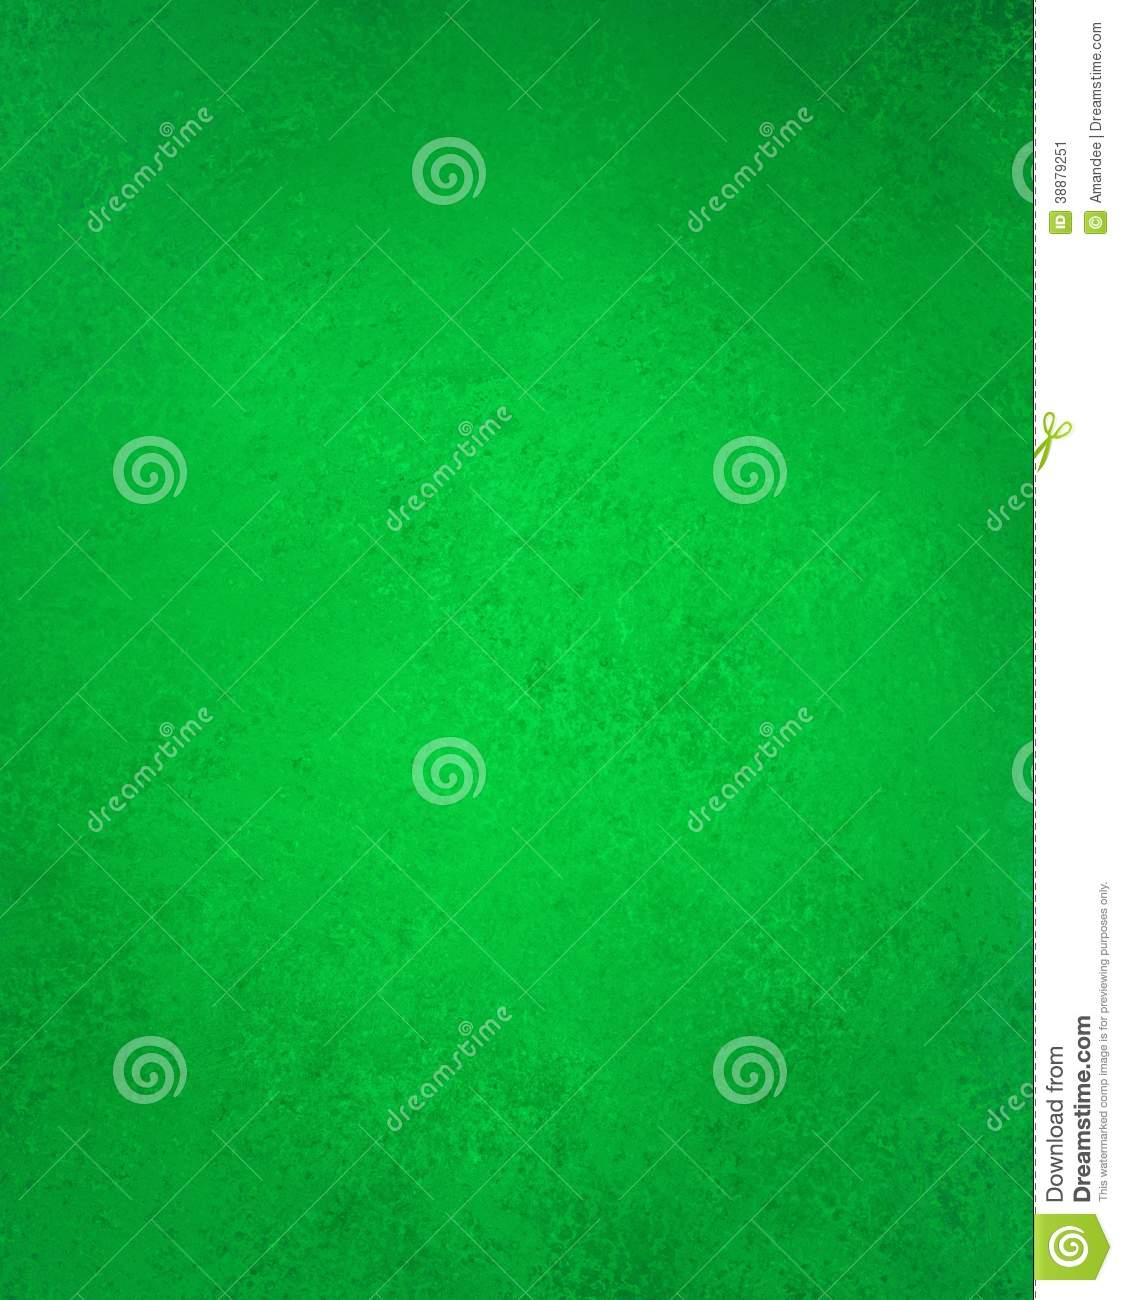 Abstract Christmas green background texture